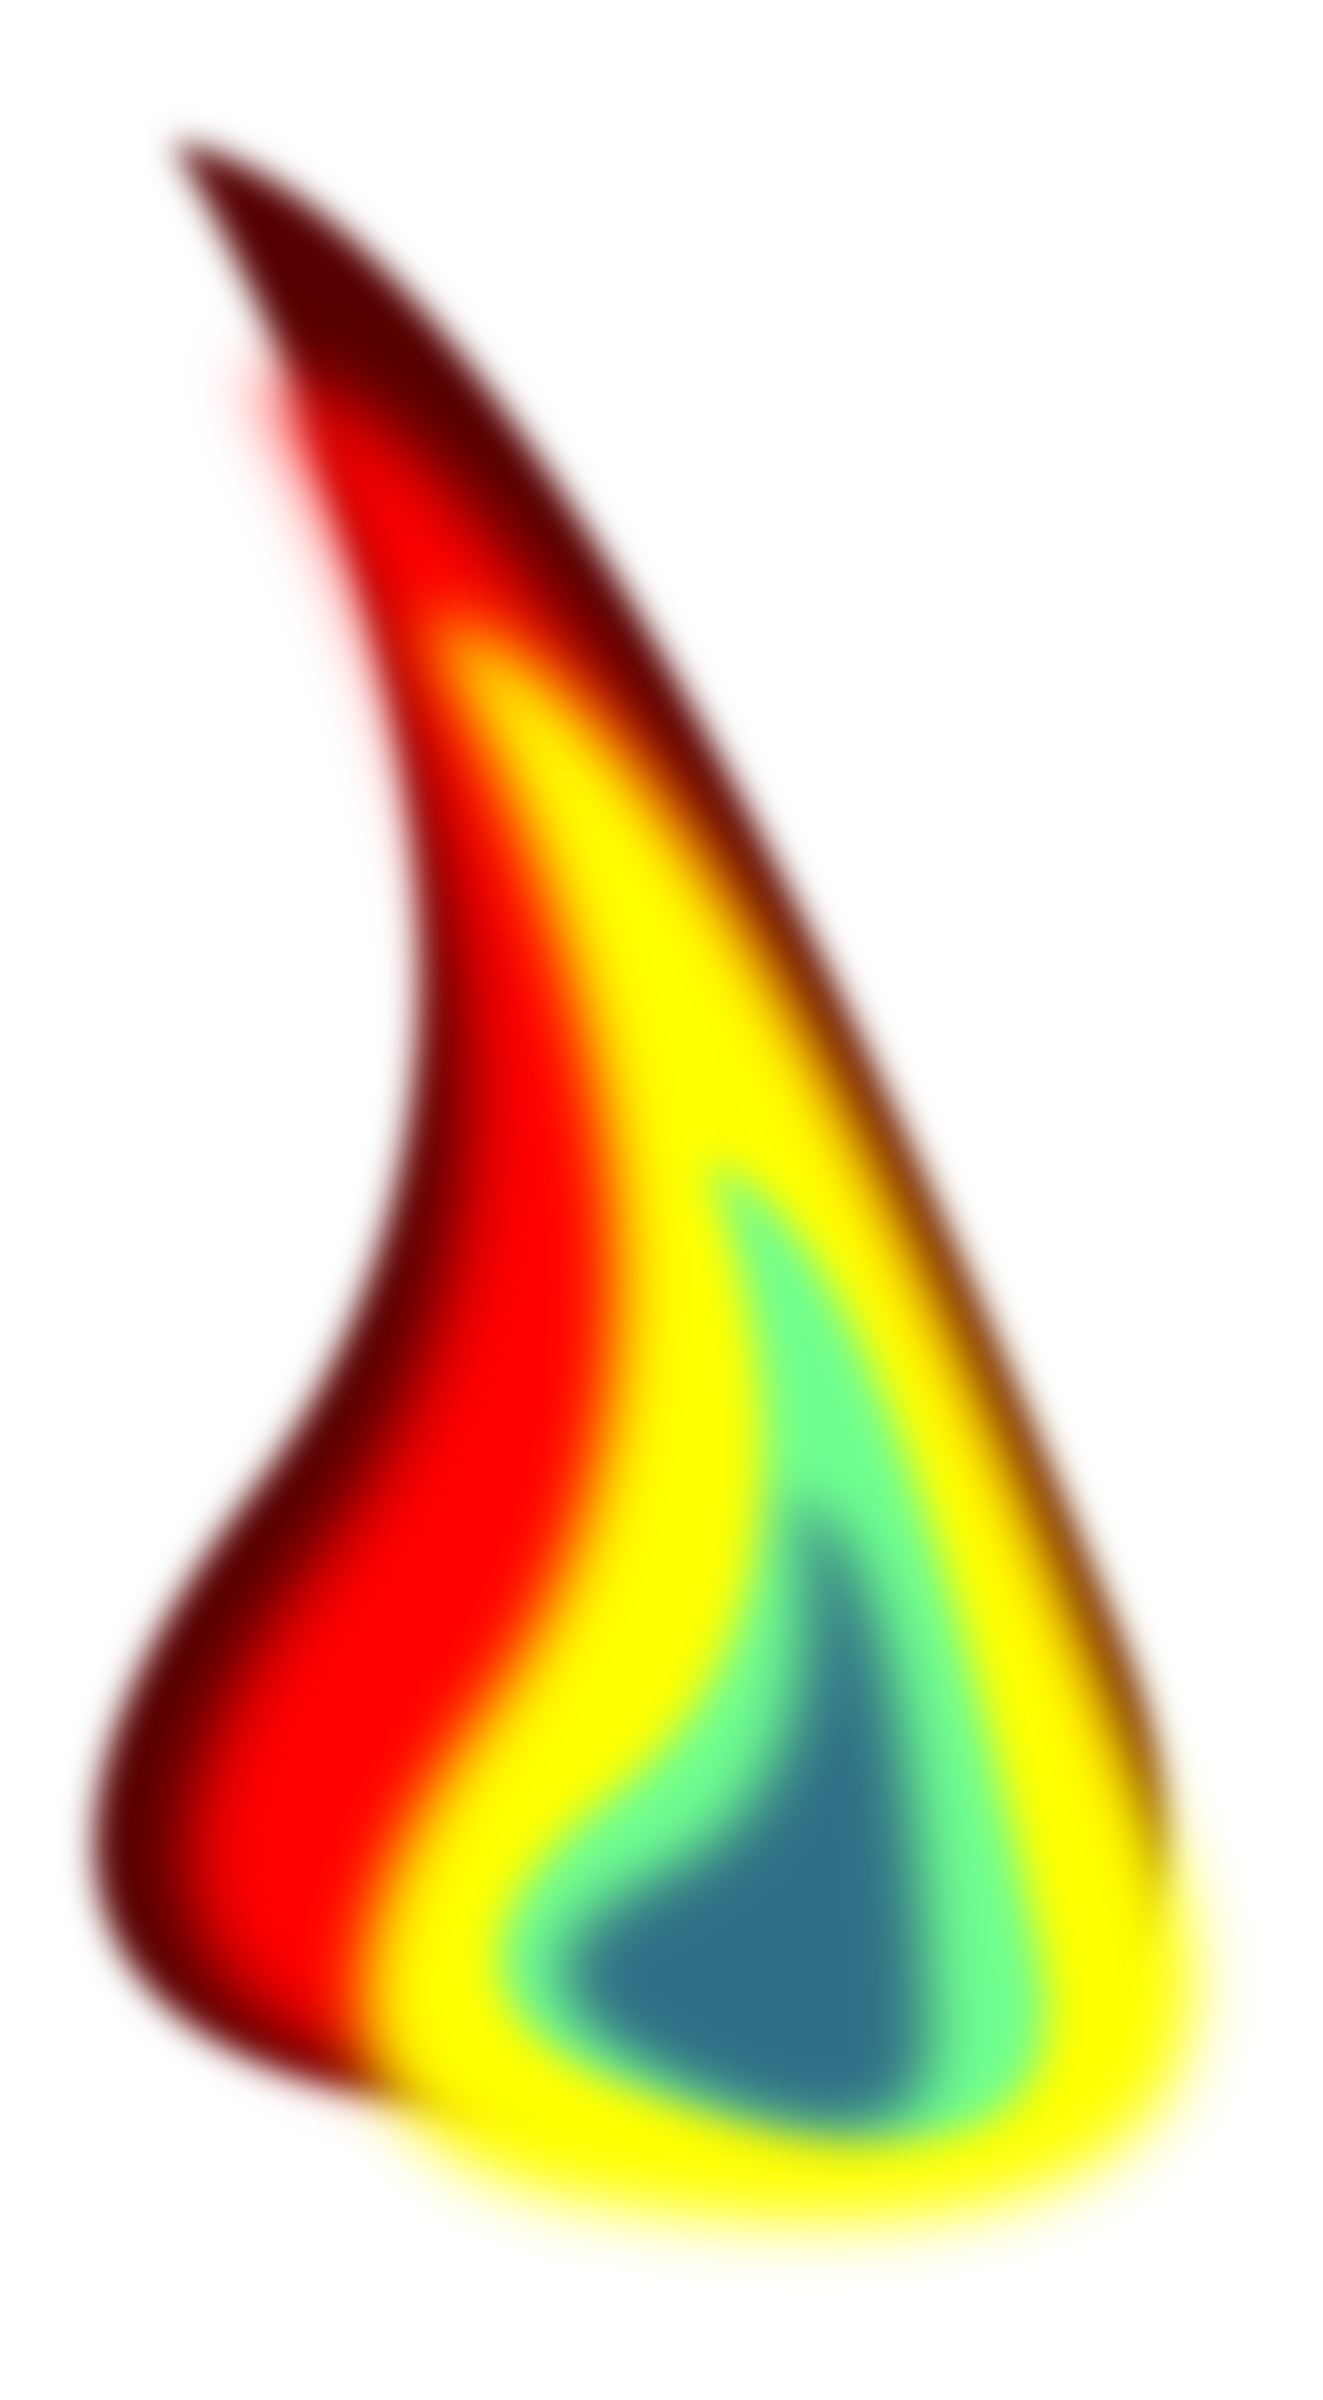 Flame clipart small flame. Fixed big image png